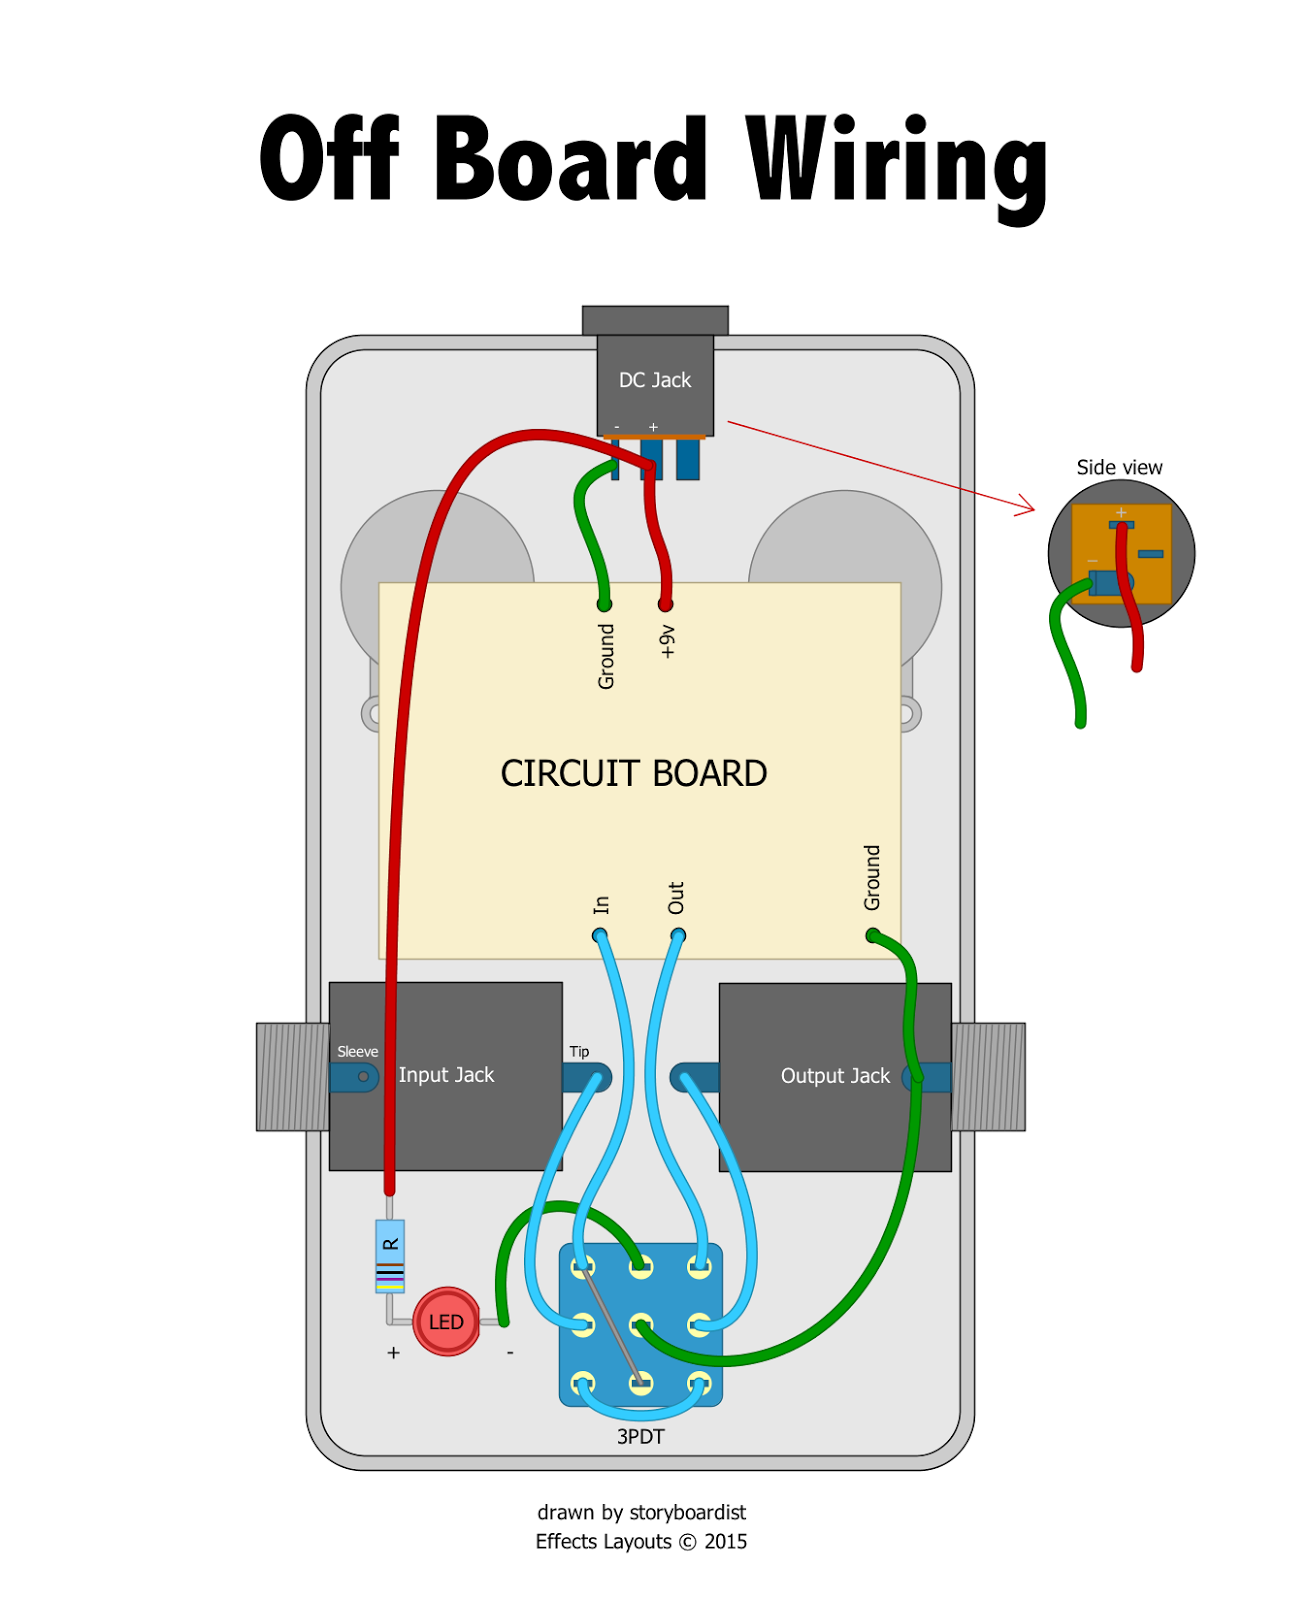 3pdt off board wiring application wiring diagram u2022 rh cleanairclub co Guitar Pedal Jack Wiring DIY Stompboxes Guitar Pedal Wiring